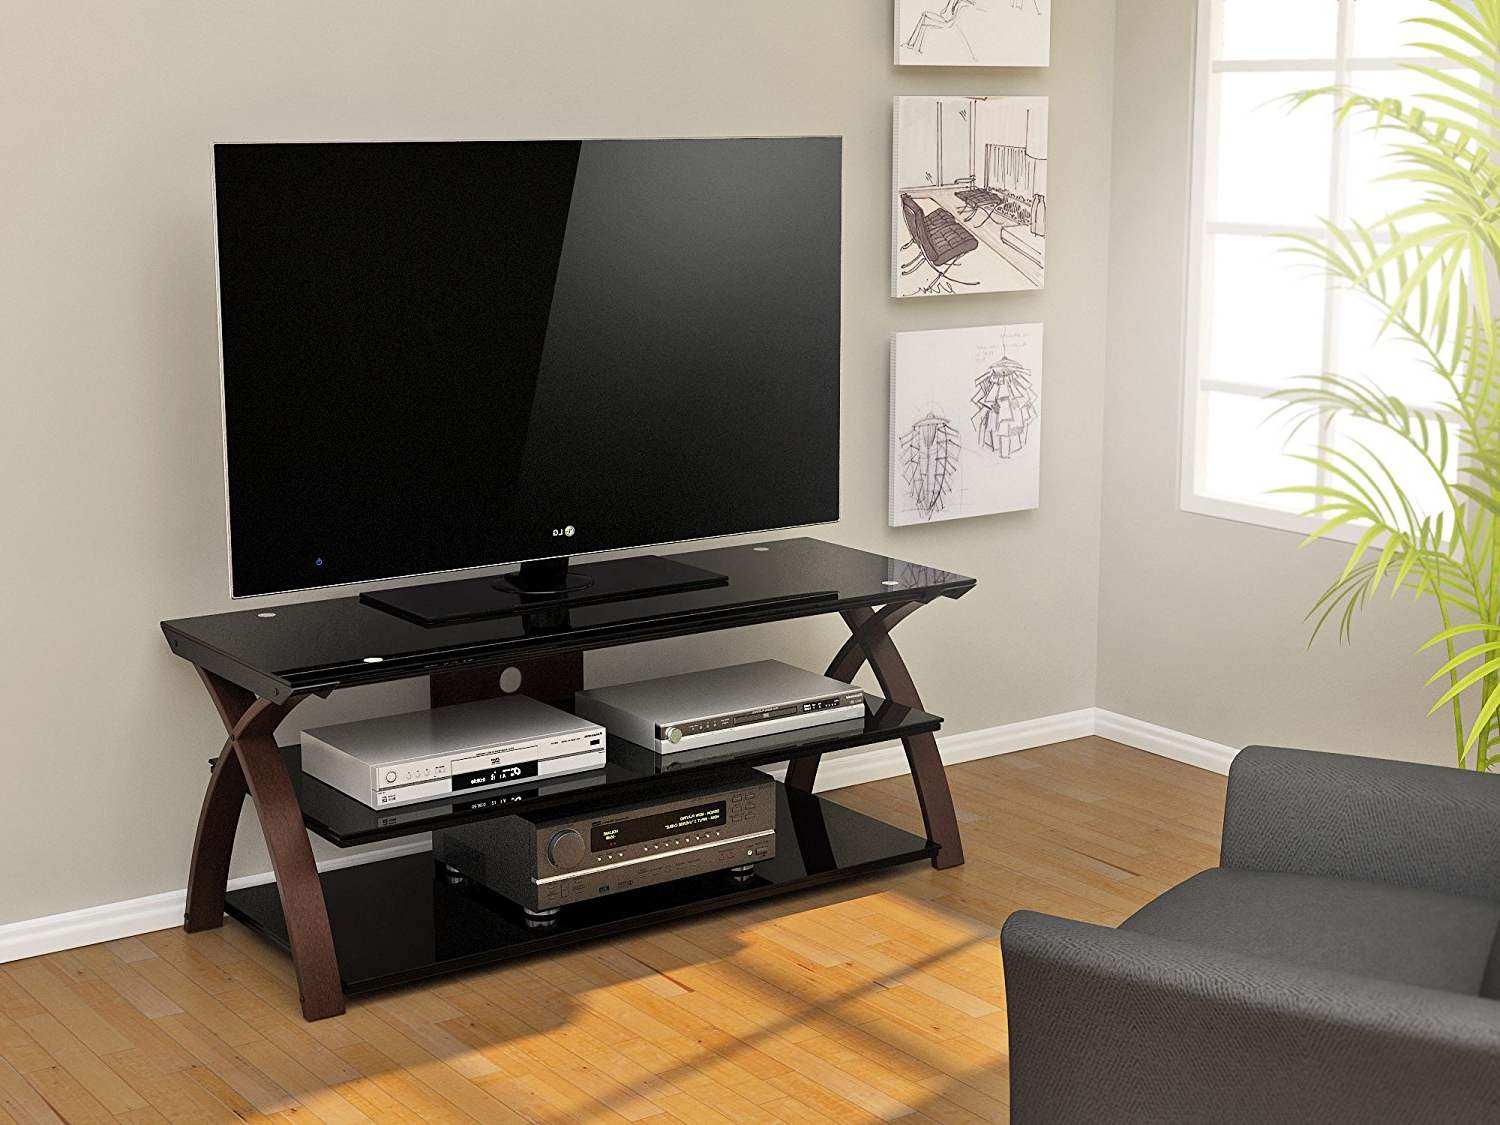 Tv Stands For 55 Inch Tv Regarding Famous 55 Inch Corner Tv Stand And Its Benefits – Furnish Ideas (View 15 of 20)